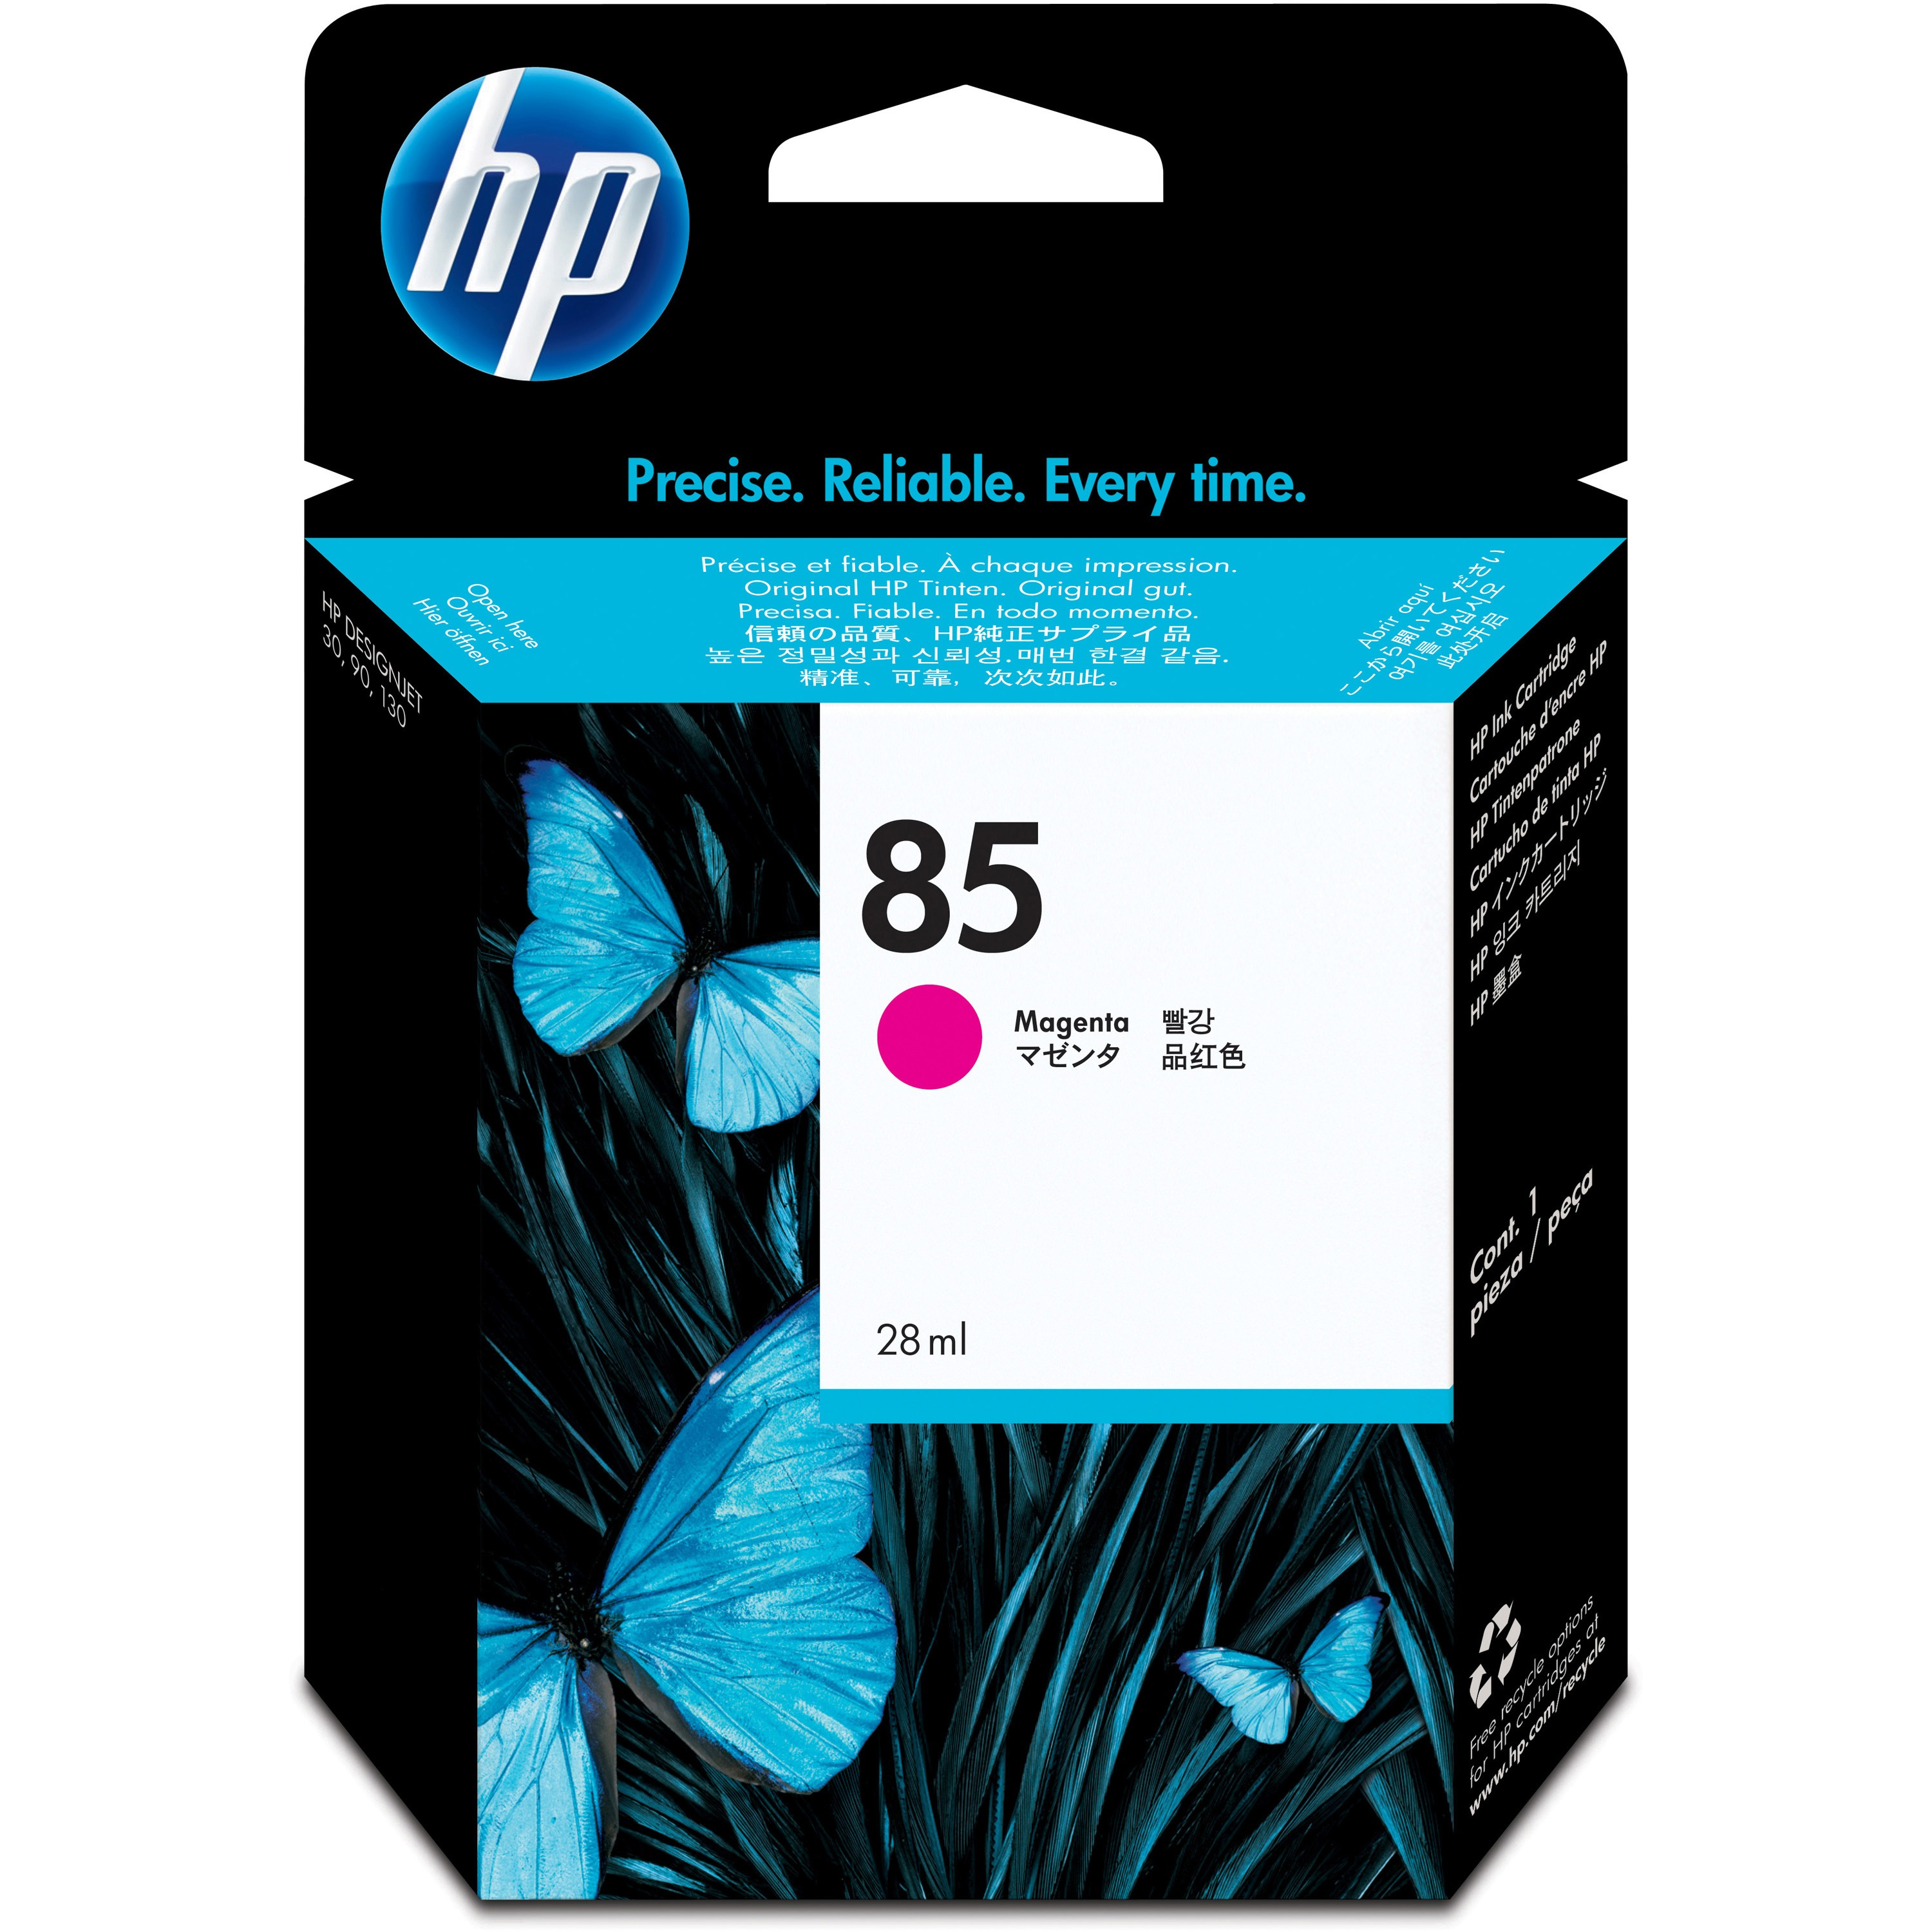 HP, HEWC9426A, C9425A to 29A Series Ink Cartridges